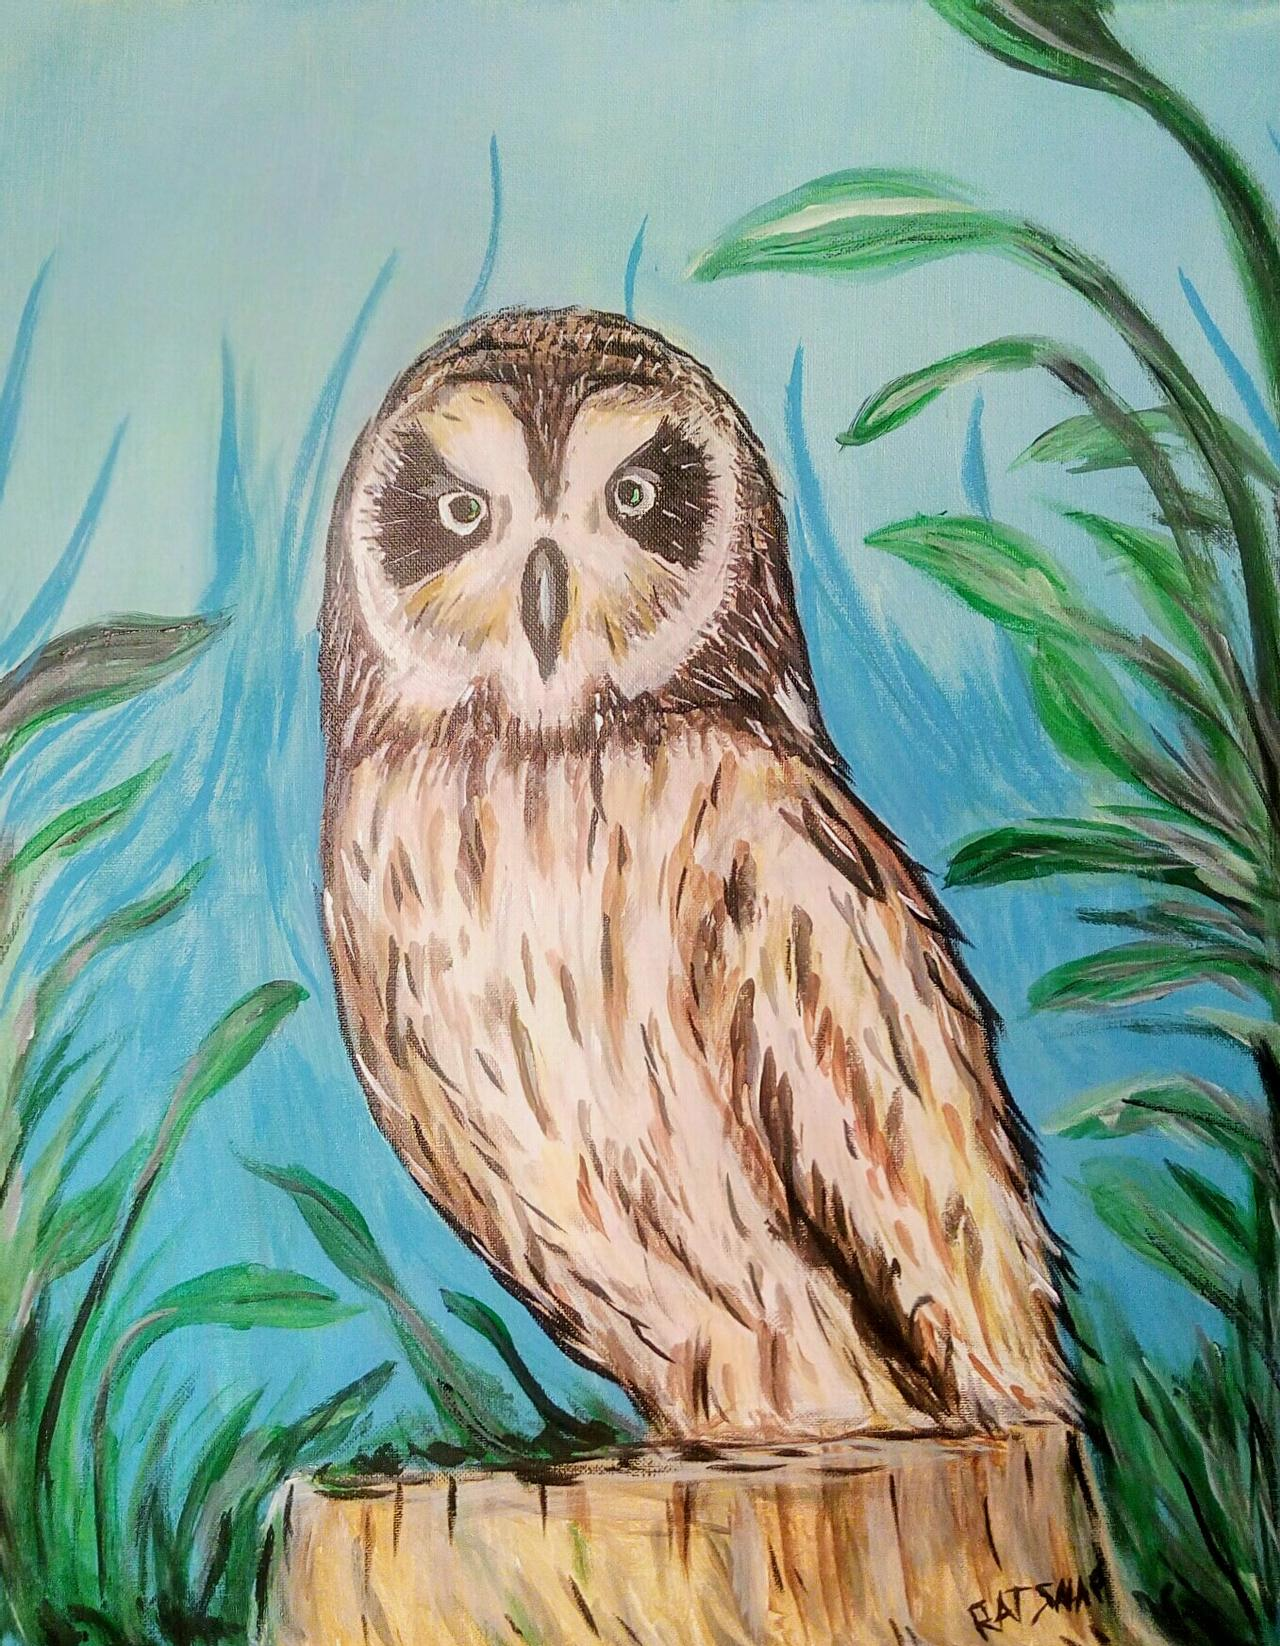 9/30/20 3:30-4:10 pm Fall Owl Drawing Class